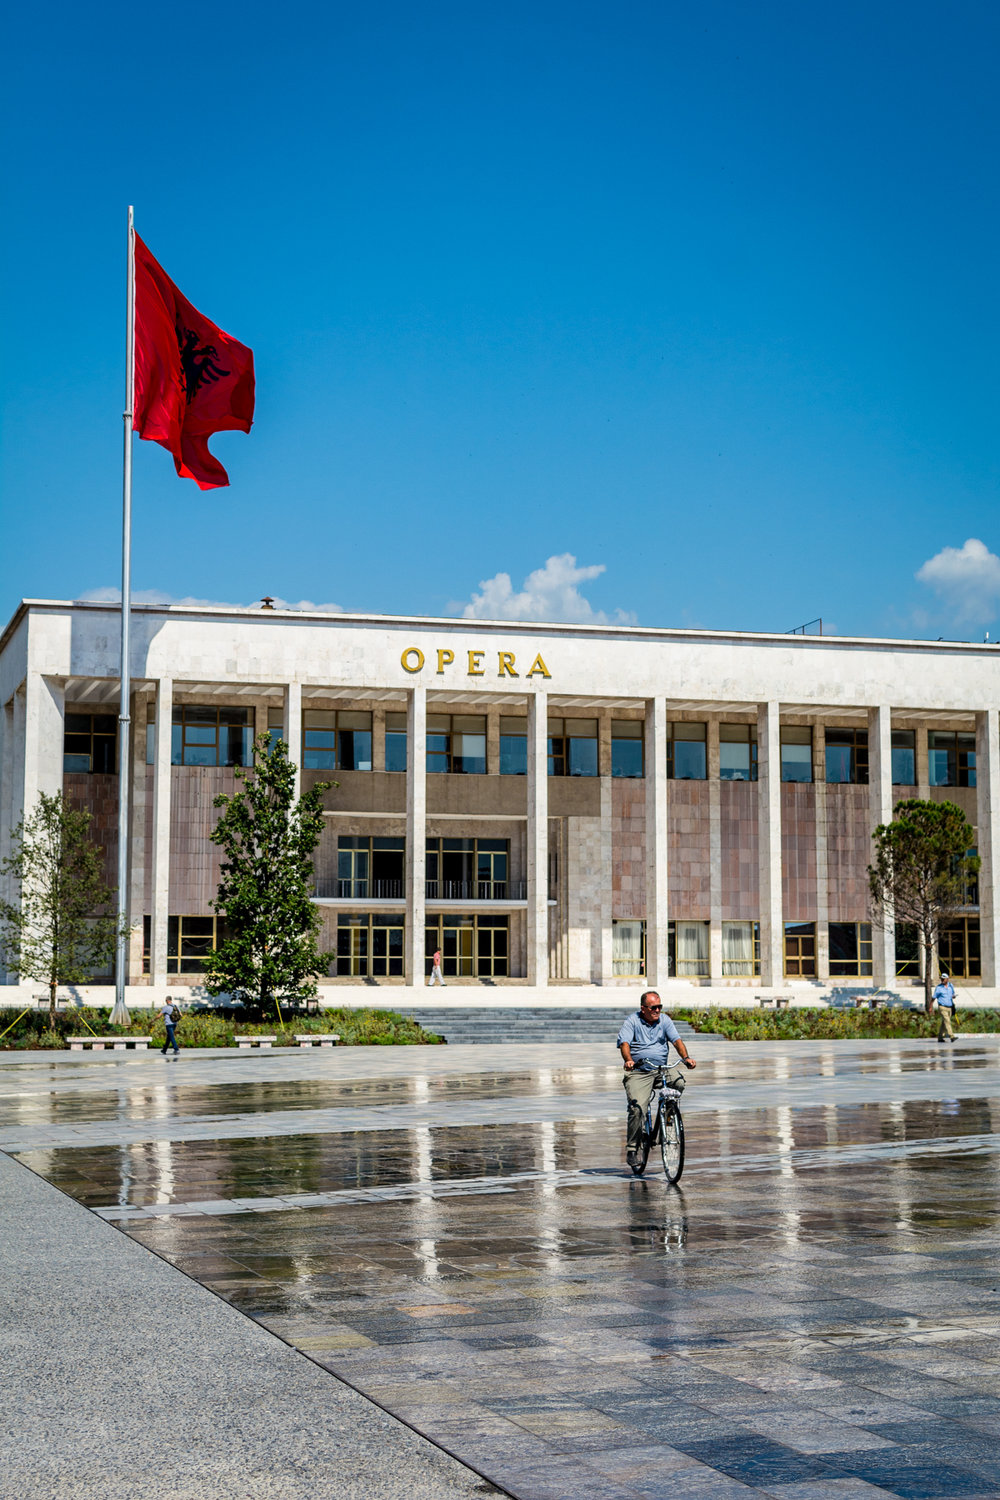 A man cycles through Tirana's main square. The stone tiles are meant to represent the different areas of Albania and are kept wet to show their full colour.